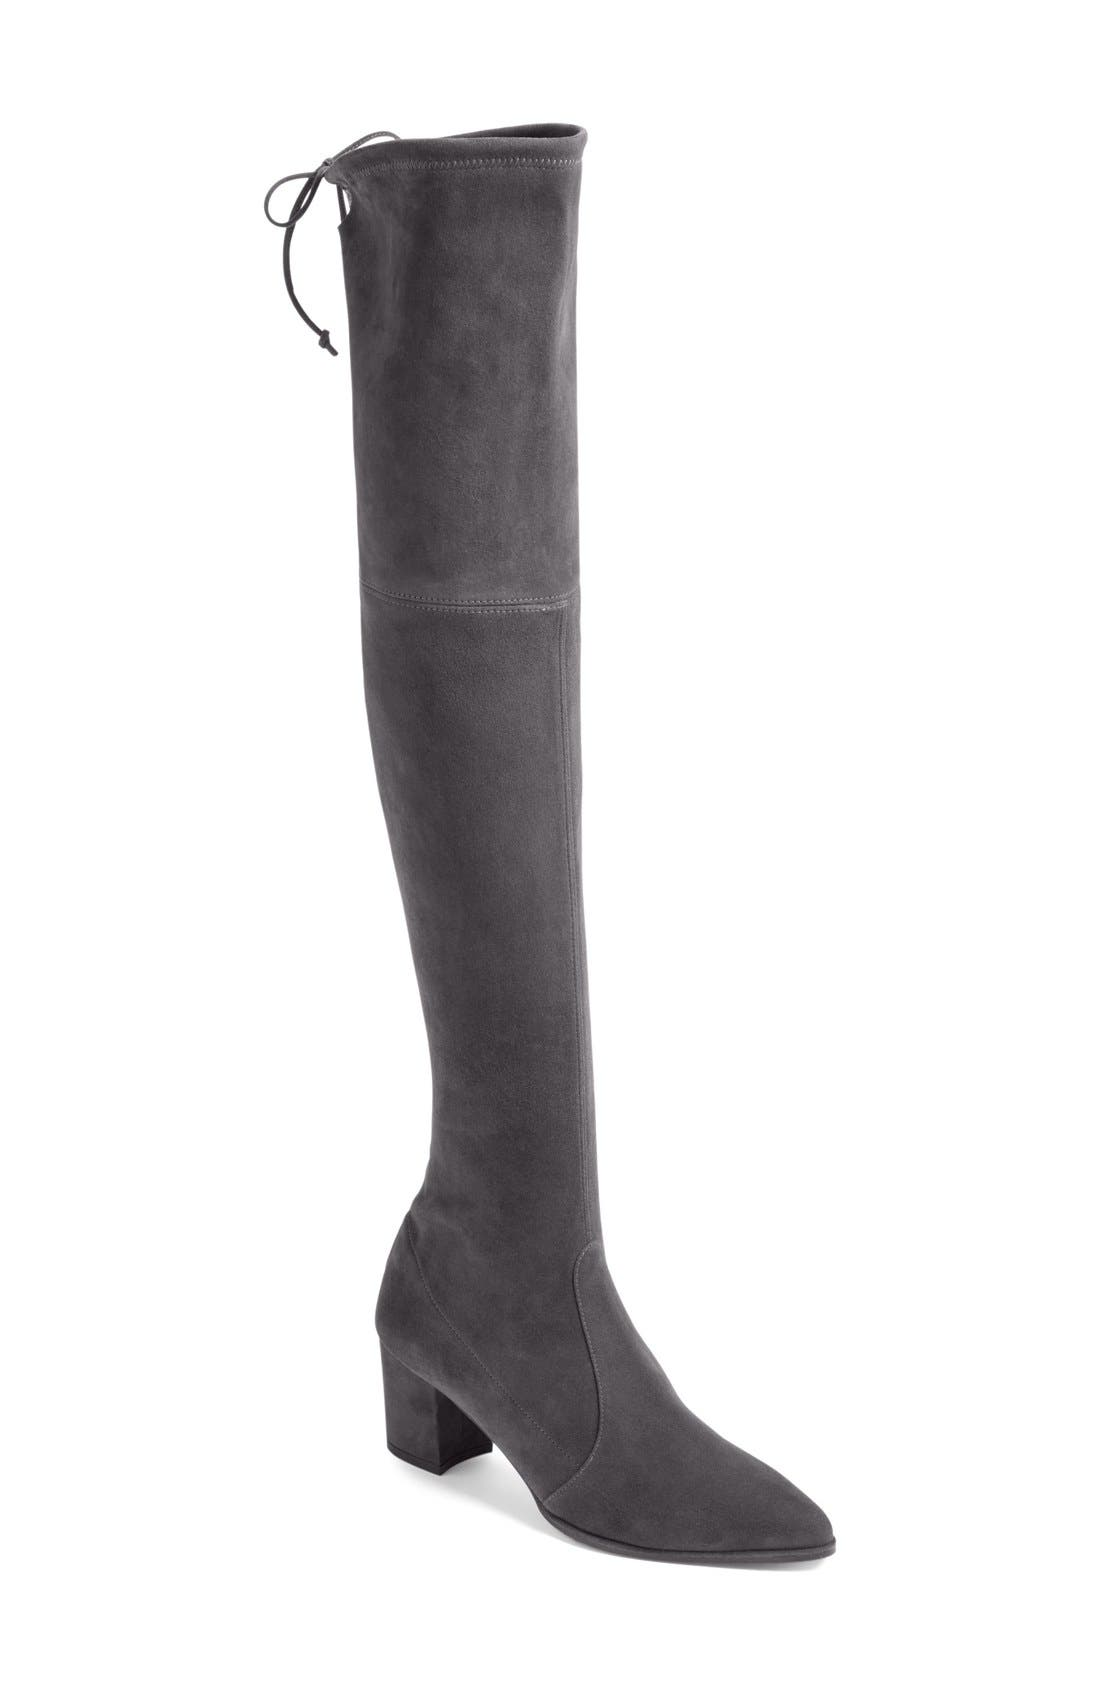 Alternate Image 1 Selected - Stuart Weitzman Thighland Over the Knee Boot (Women)